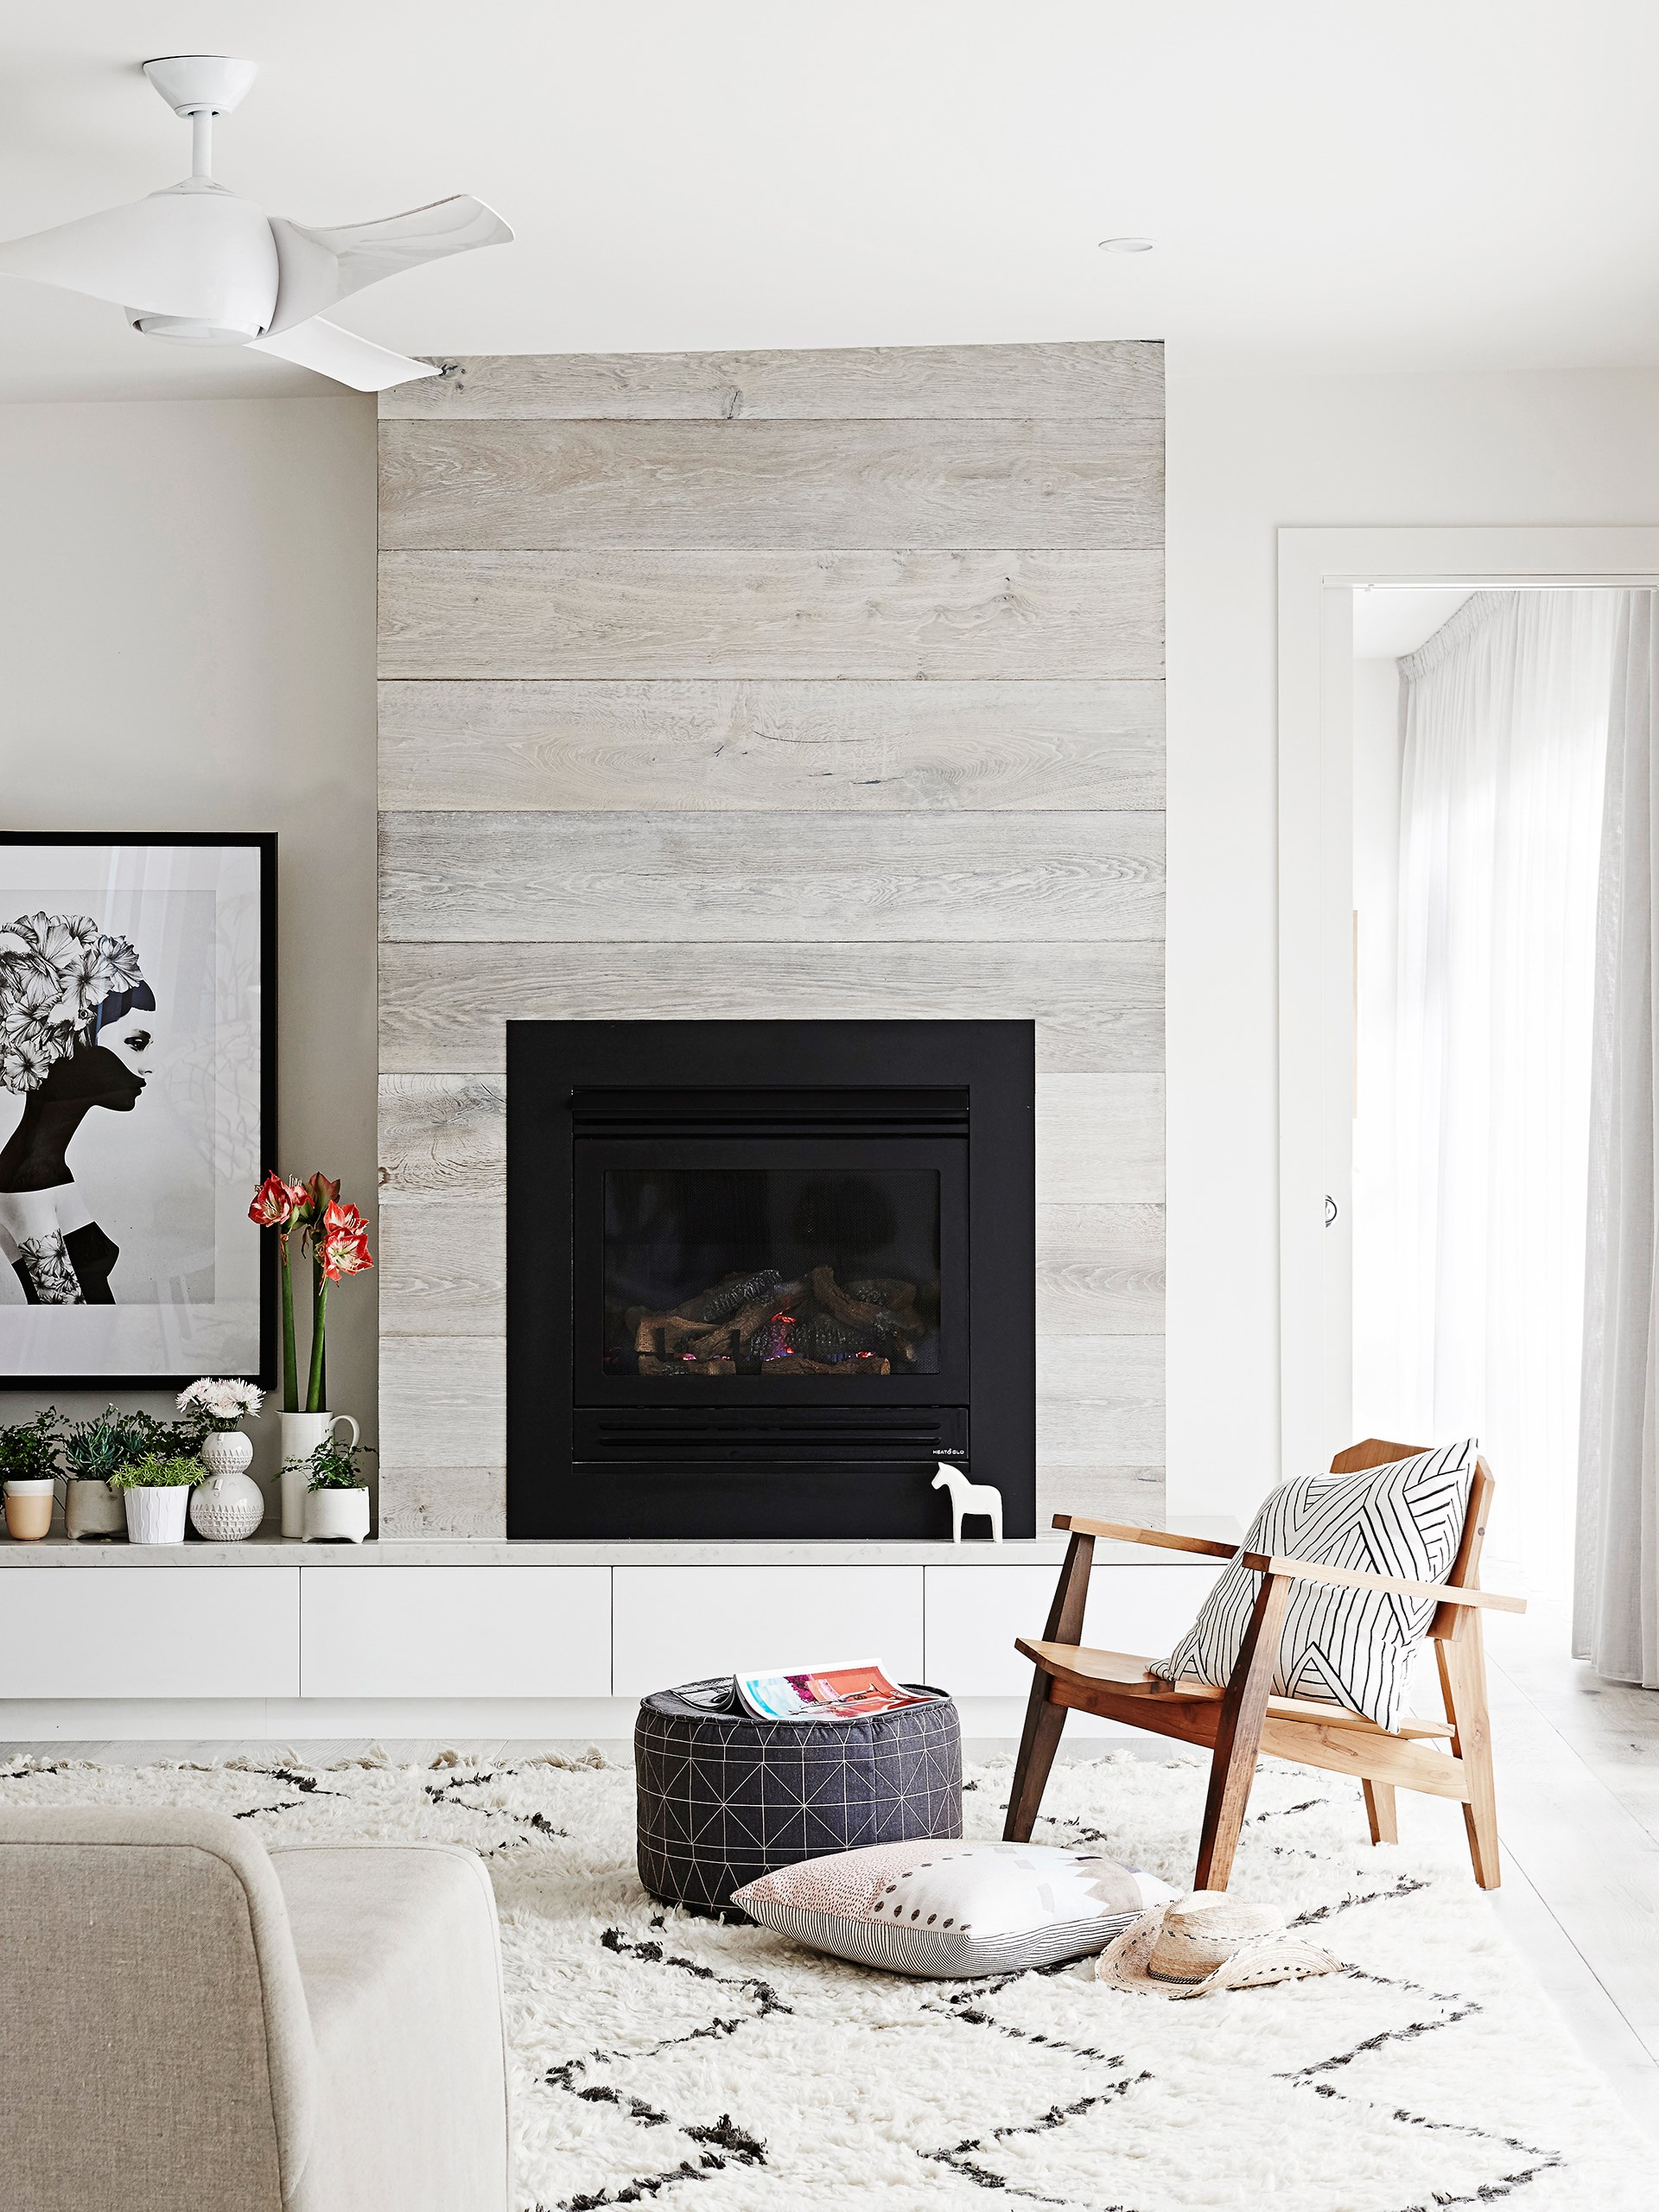 "[Discover eight stylish ways to warm your home for winter here >](http://www.homestolove.com.au/8-stylish-ways-to-warm-up-the-home-for-winter-3377|target=""_blank"") Photo: Eve Wilson / real living"